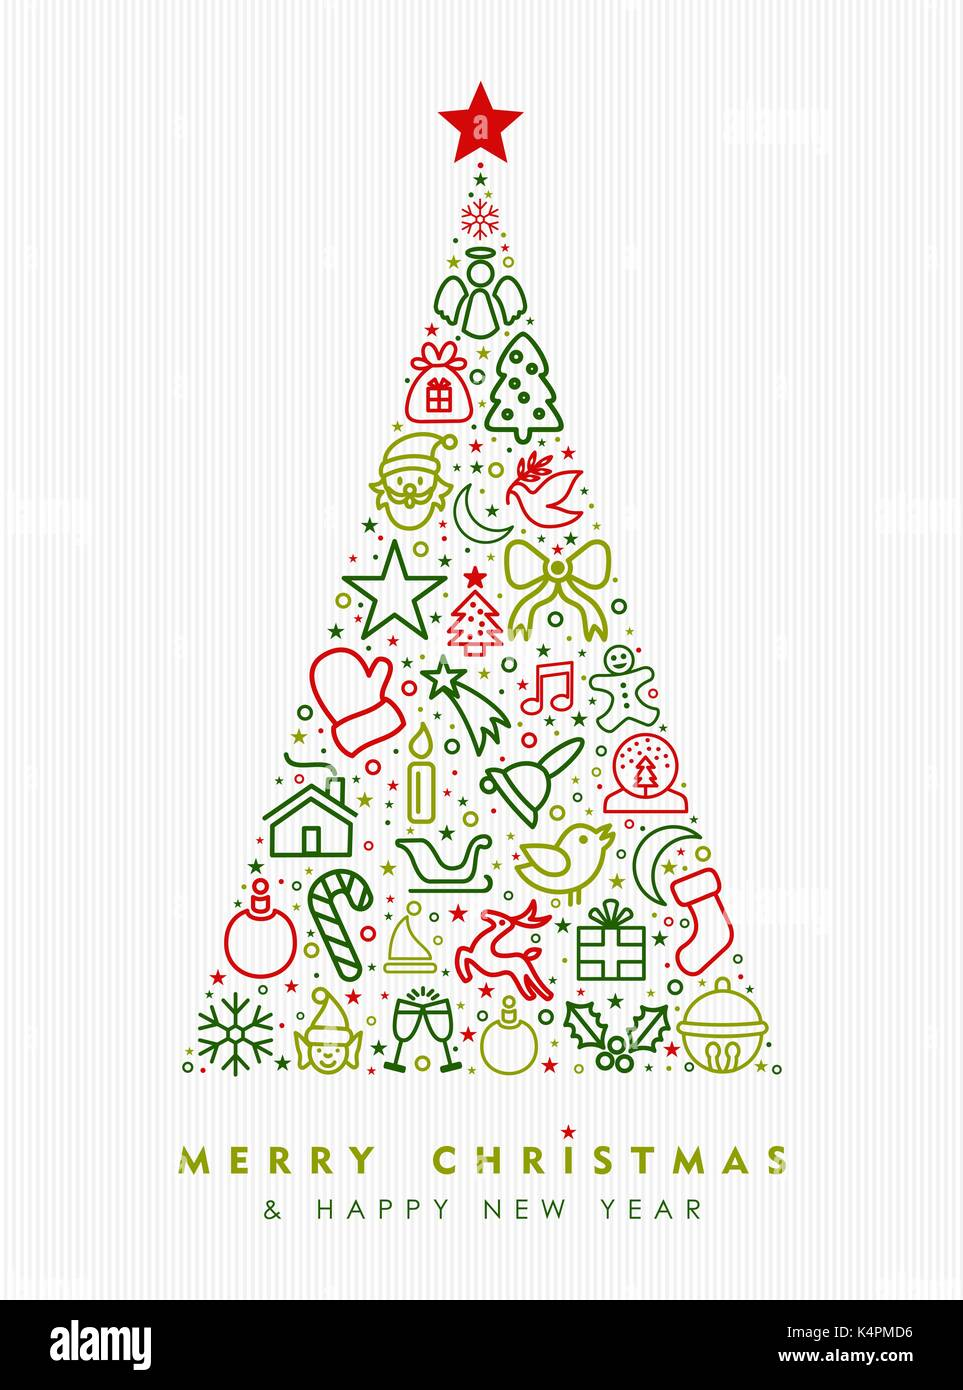 merry christmas and happy new year greeting card design holiday line stock vector image art alamy https www alamy com merry christmas and happy new year greeting card design holiday line image157850930 html